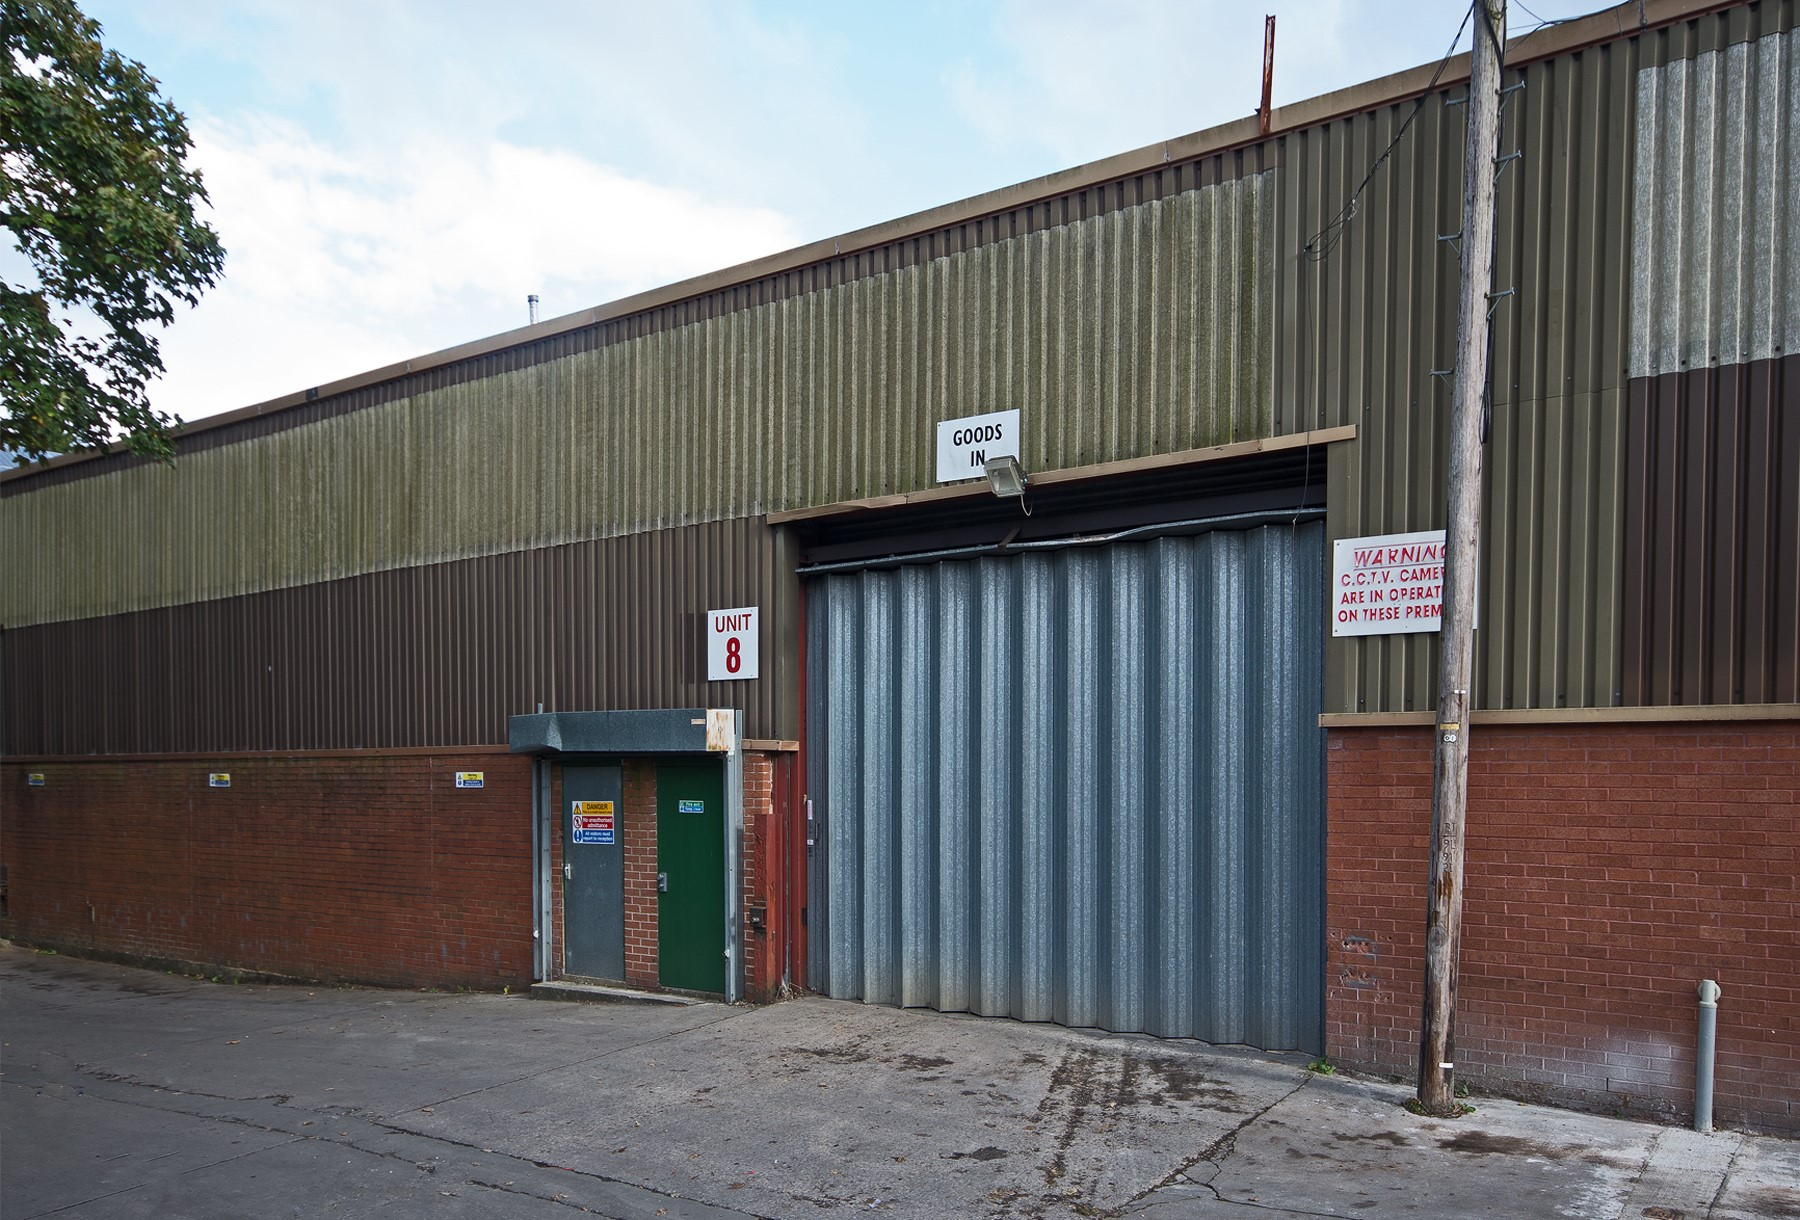 brookfield road, Unit 8 brookfield industrial estate, cheadle ext.jpg